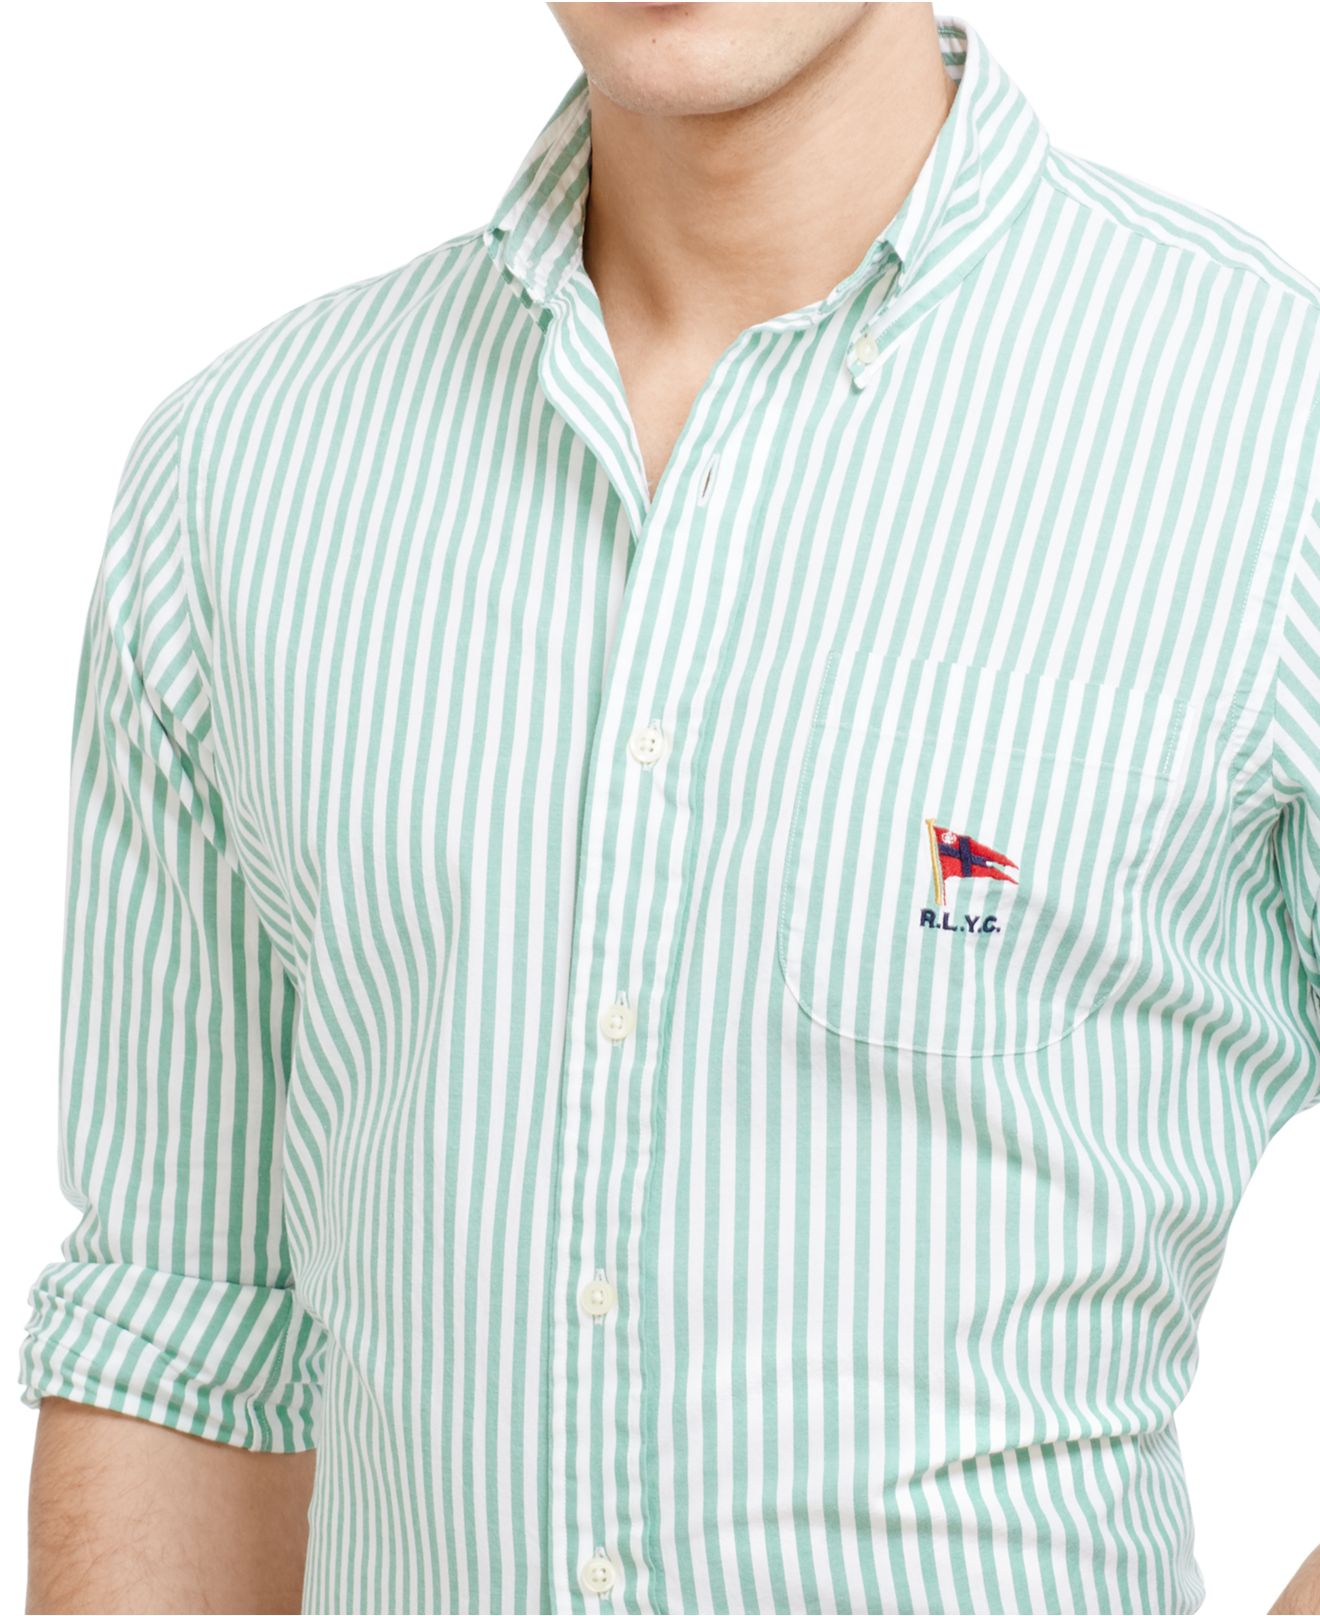 Find mens striped oxford shirt at ShopStyle. Shop the latest collection of mens striped oxford shirt from the most popular stores - all in one place.